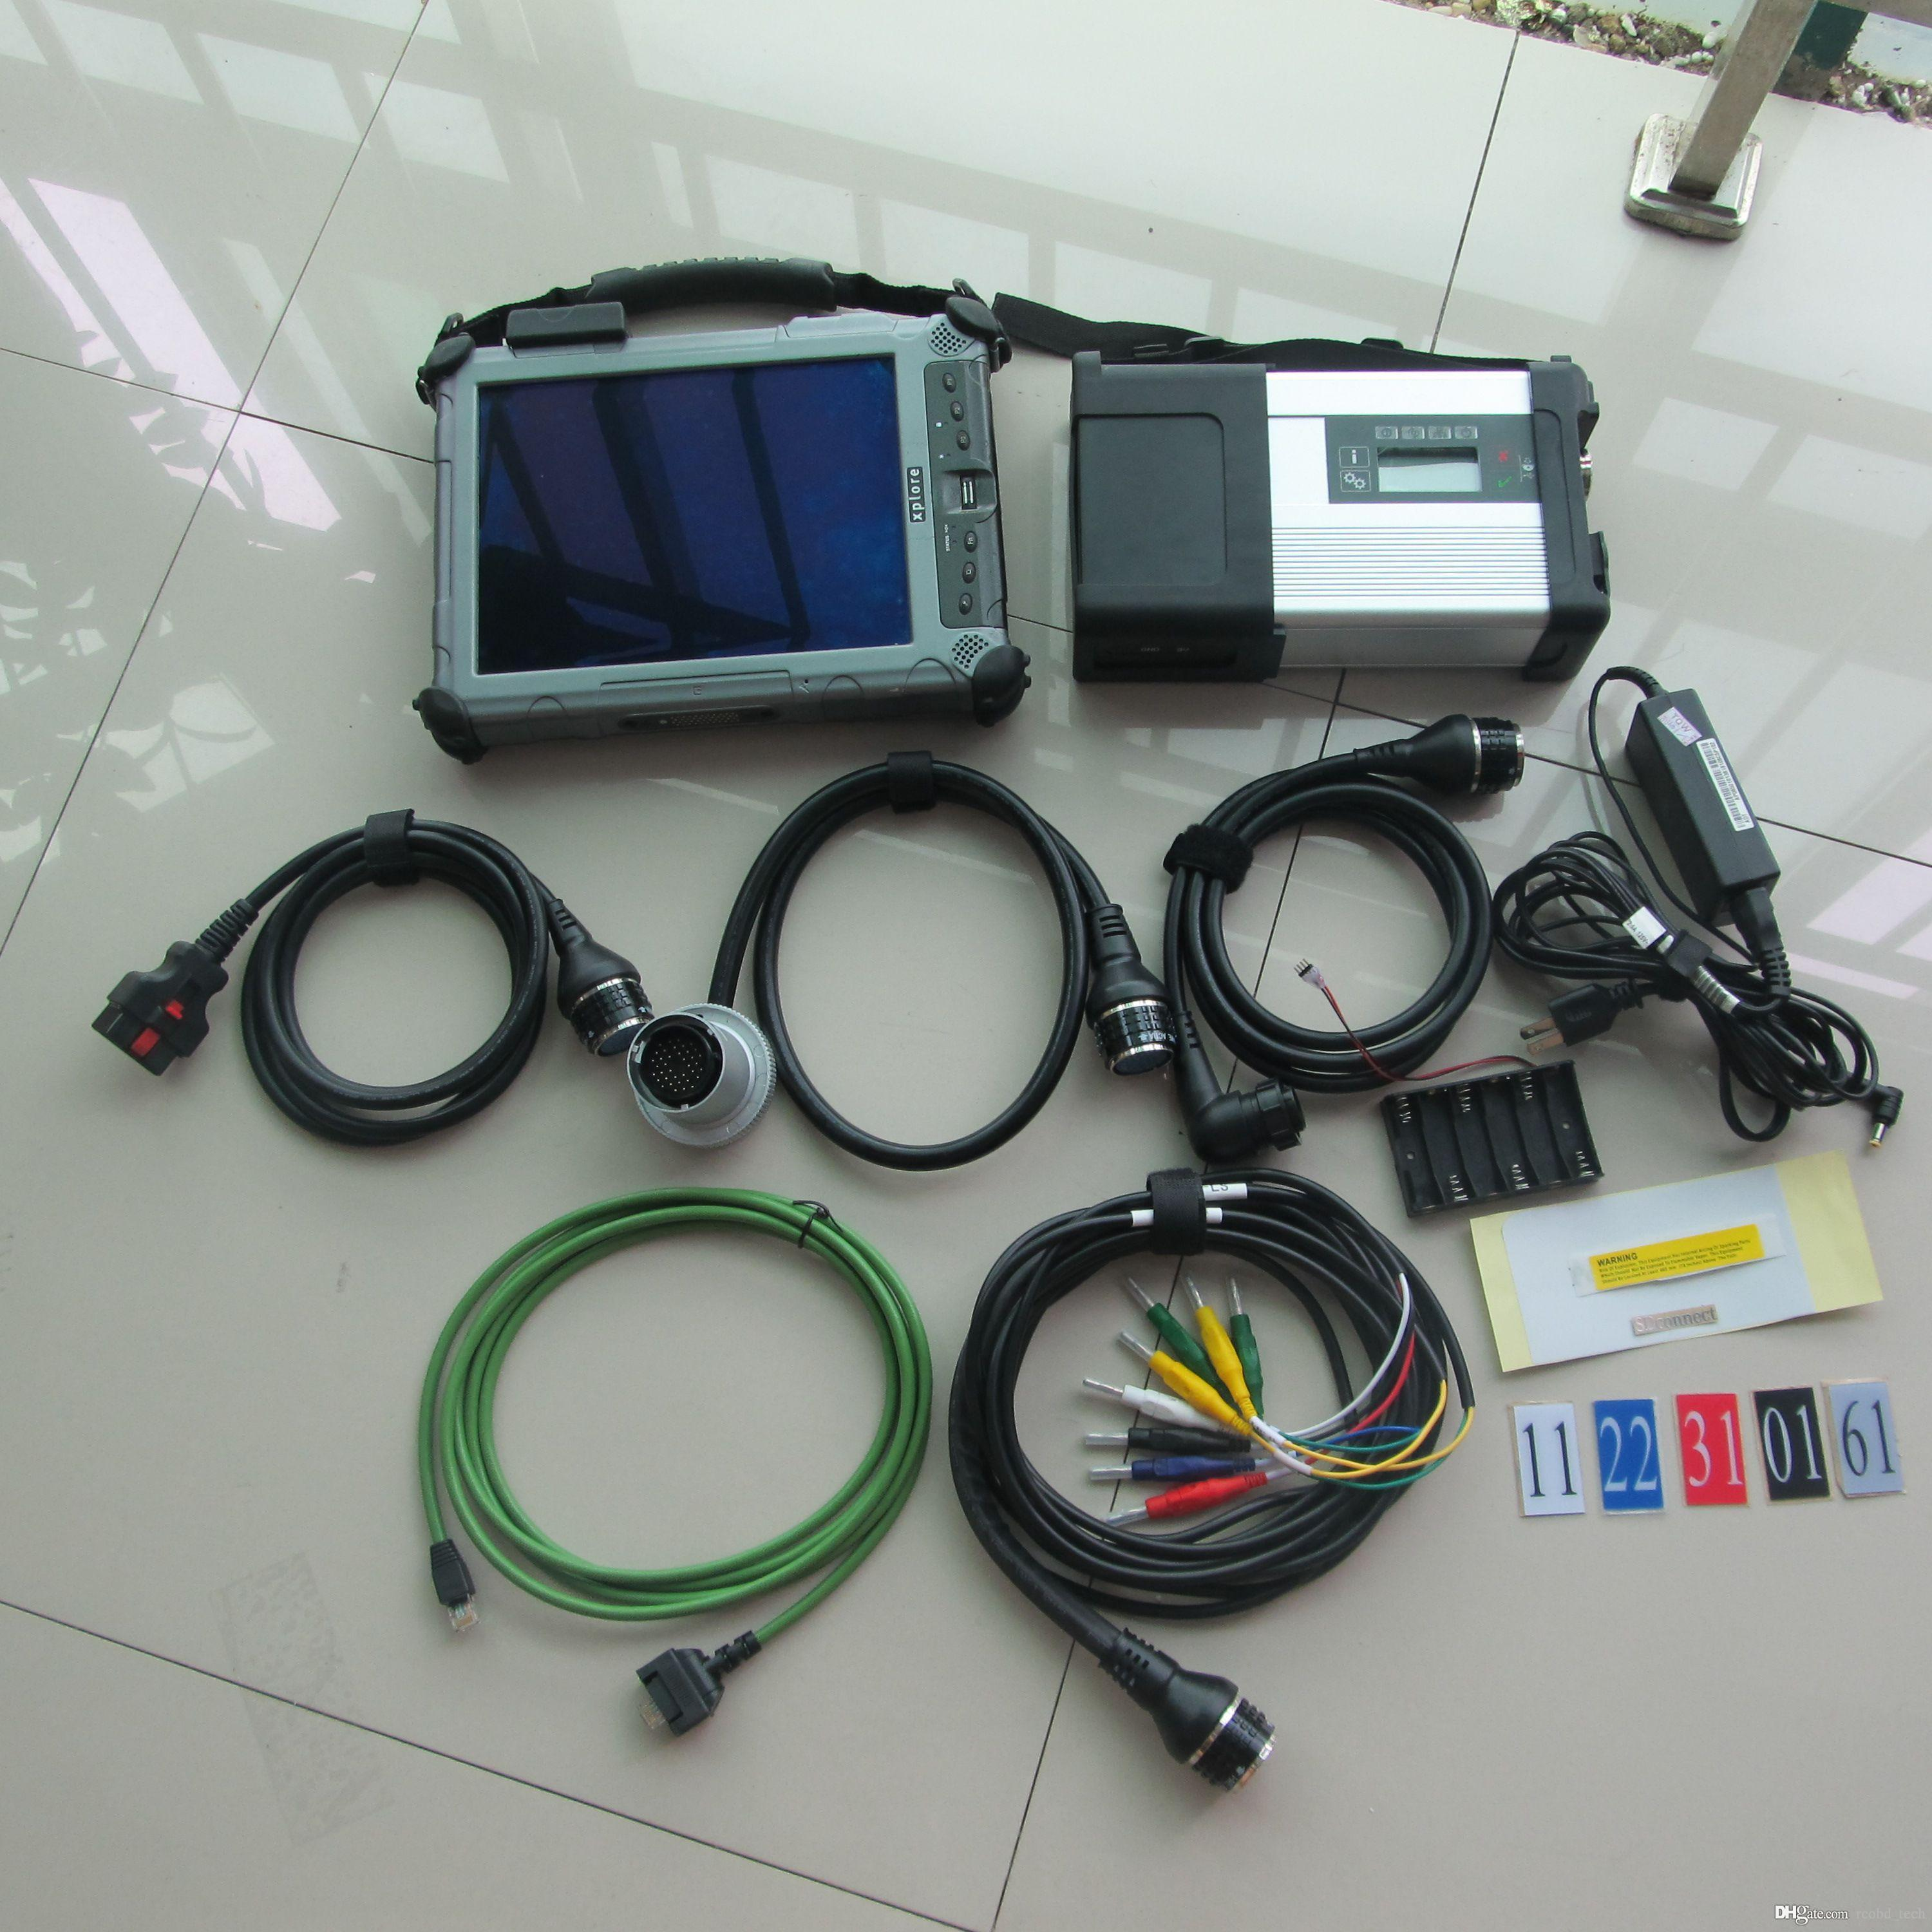 mb star sd connect c5 diagnostic tool with sd c5 v2019.09 ssd super speed in tablet ix104 c5 i7cpu laptop touch